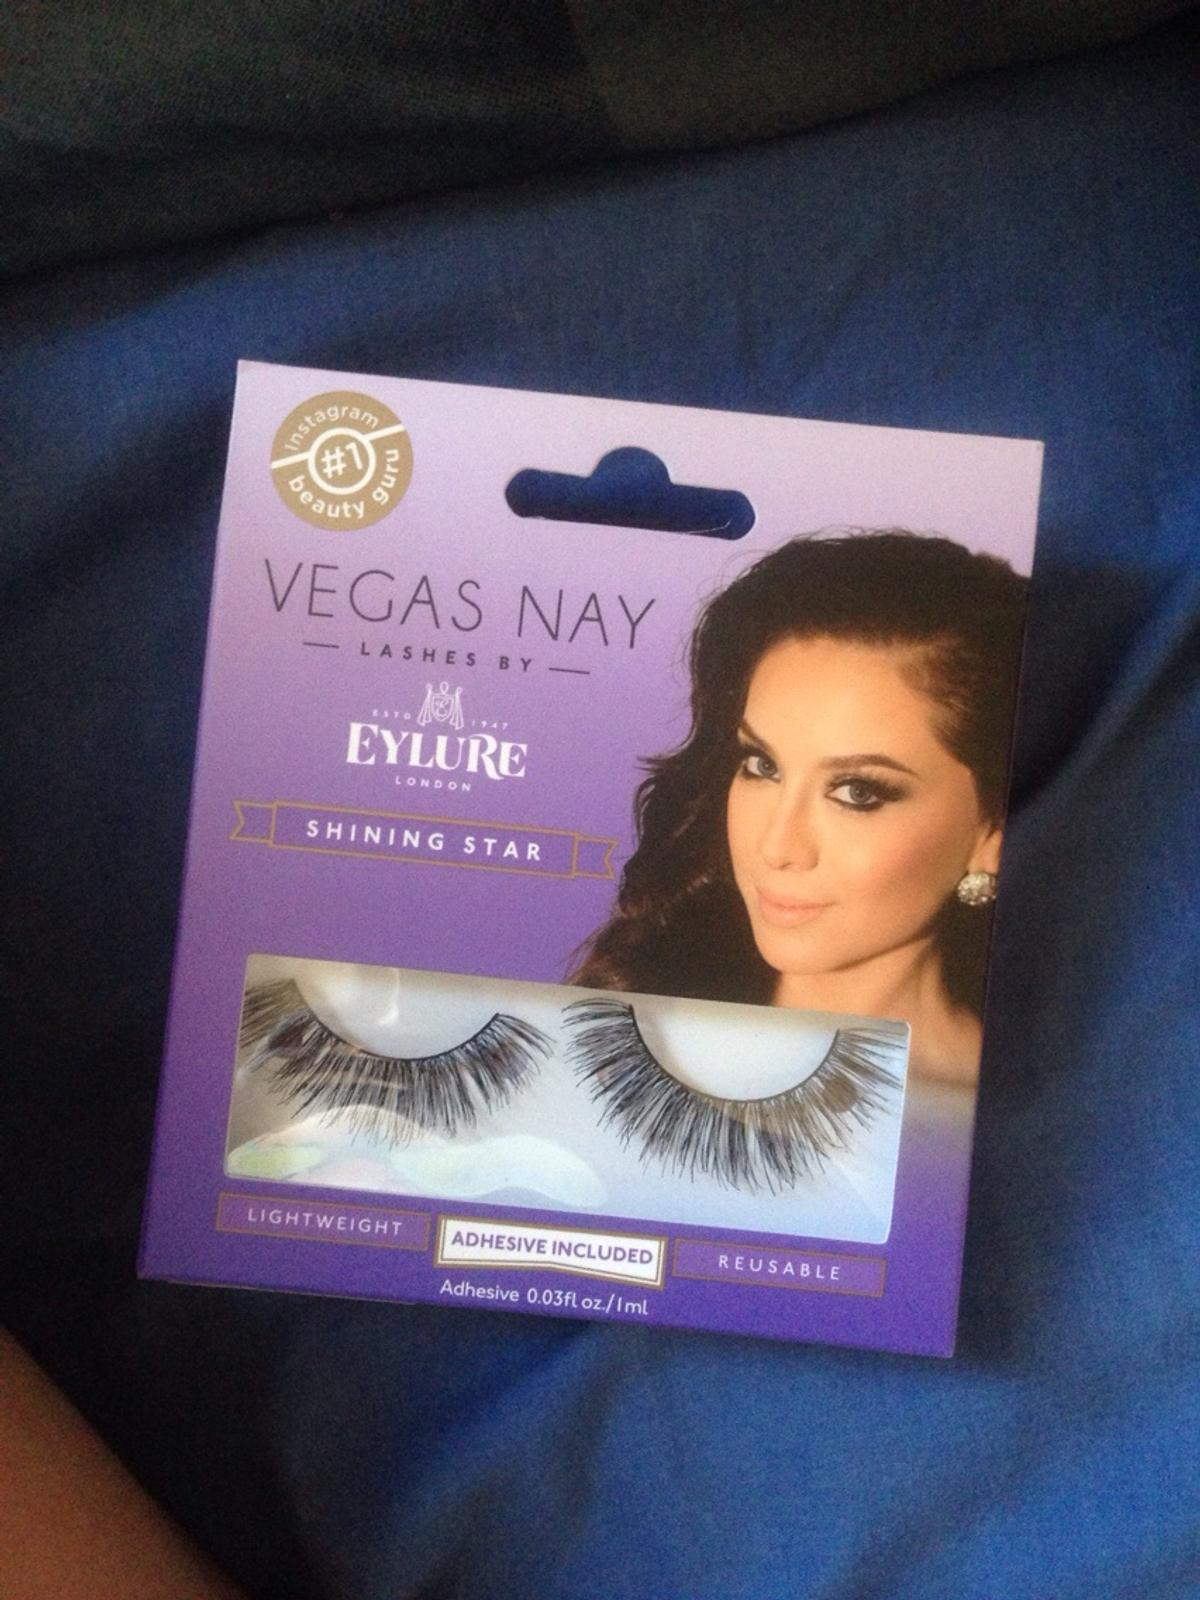 050719b8e9a Vegas nay eylure shining star lashes in DN35 Cleethorpes for £5.00 ...